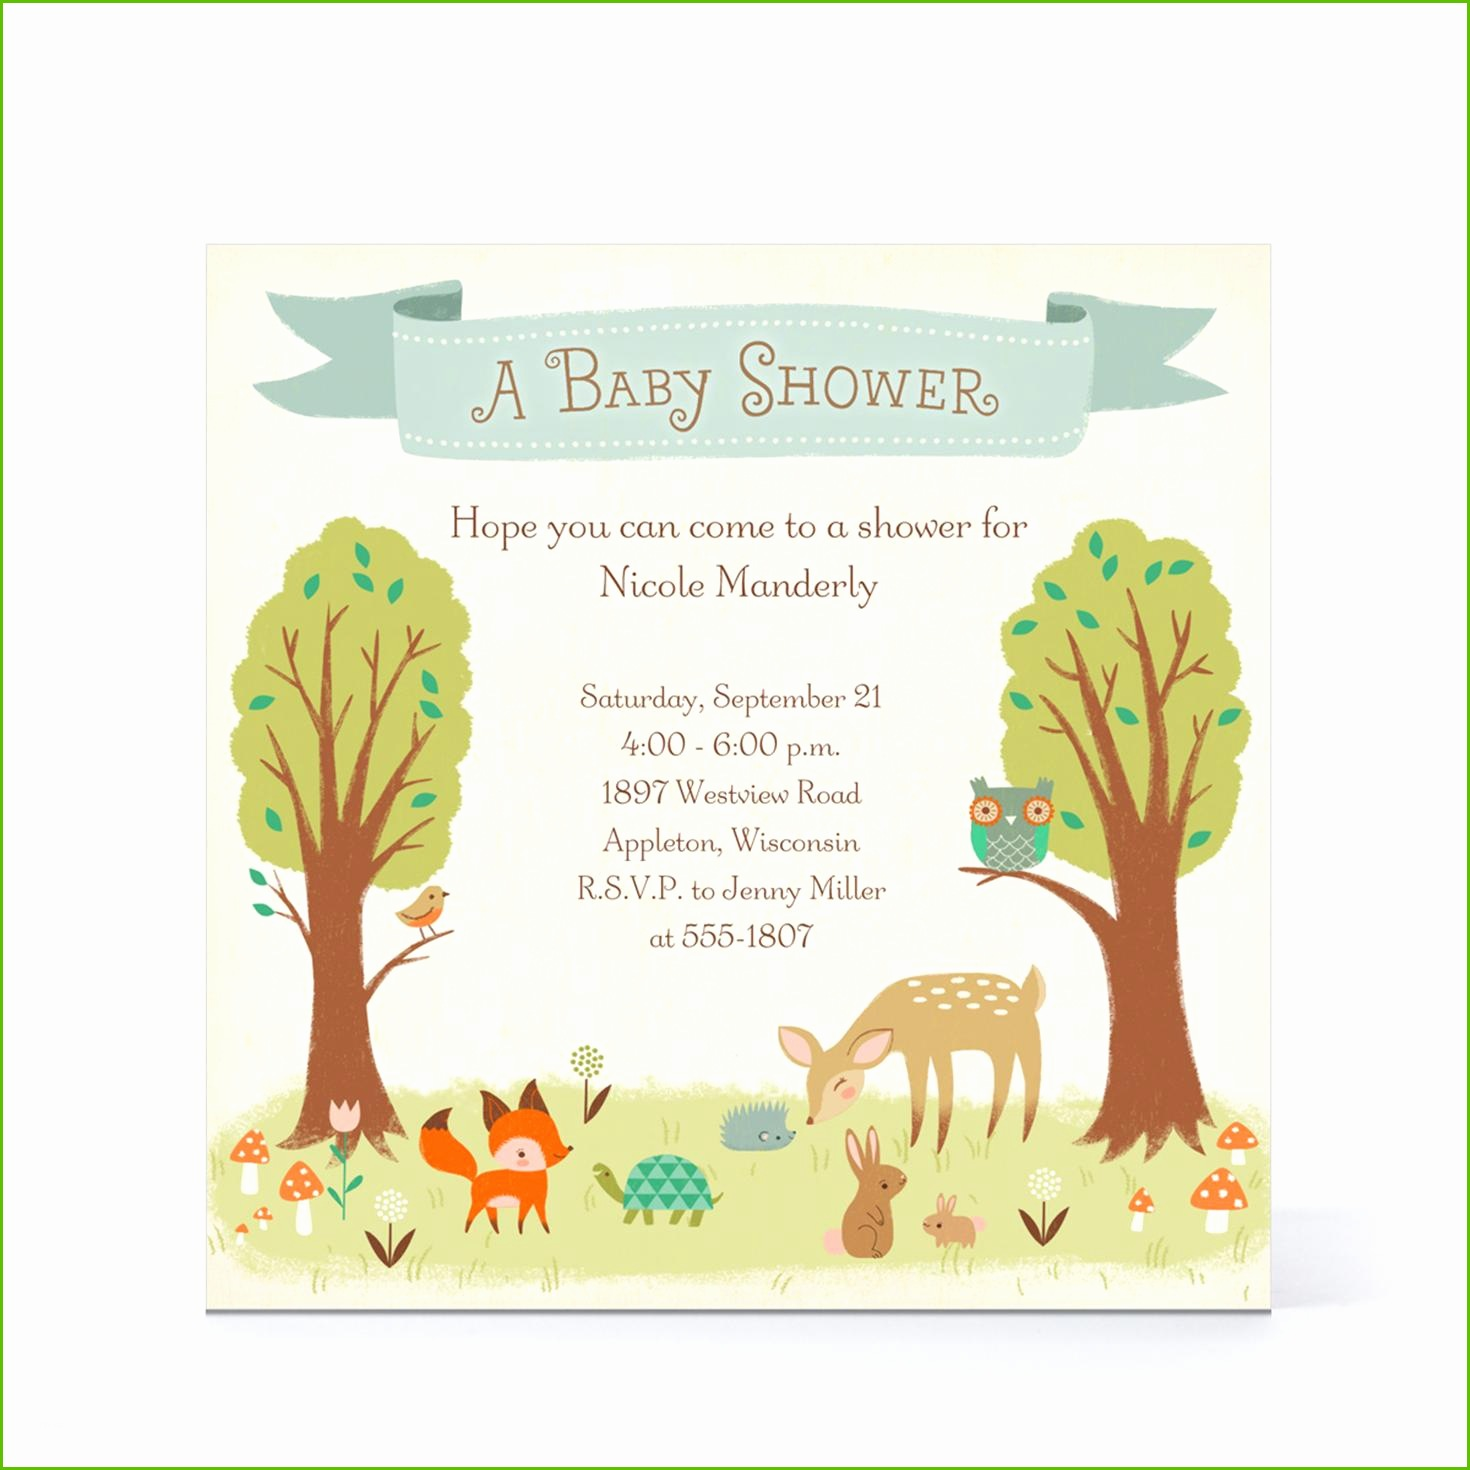 Full Size of Baby Shower:49+ Prime Baby Shower Card Message Photo Concepts Baby Shower Card Message And Baby Shower Locations With Fiesta Baby Shower Plus Baby Shower Cards Together With Baby Shower De Niño As Well As Baby Shower Notes